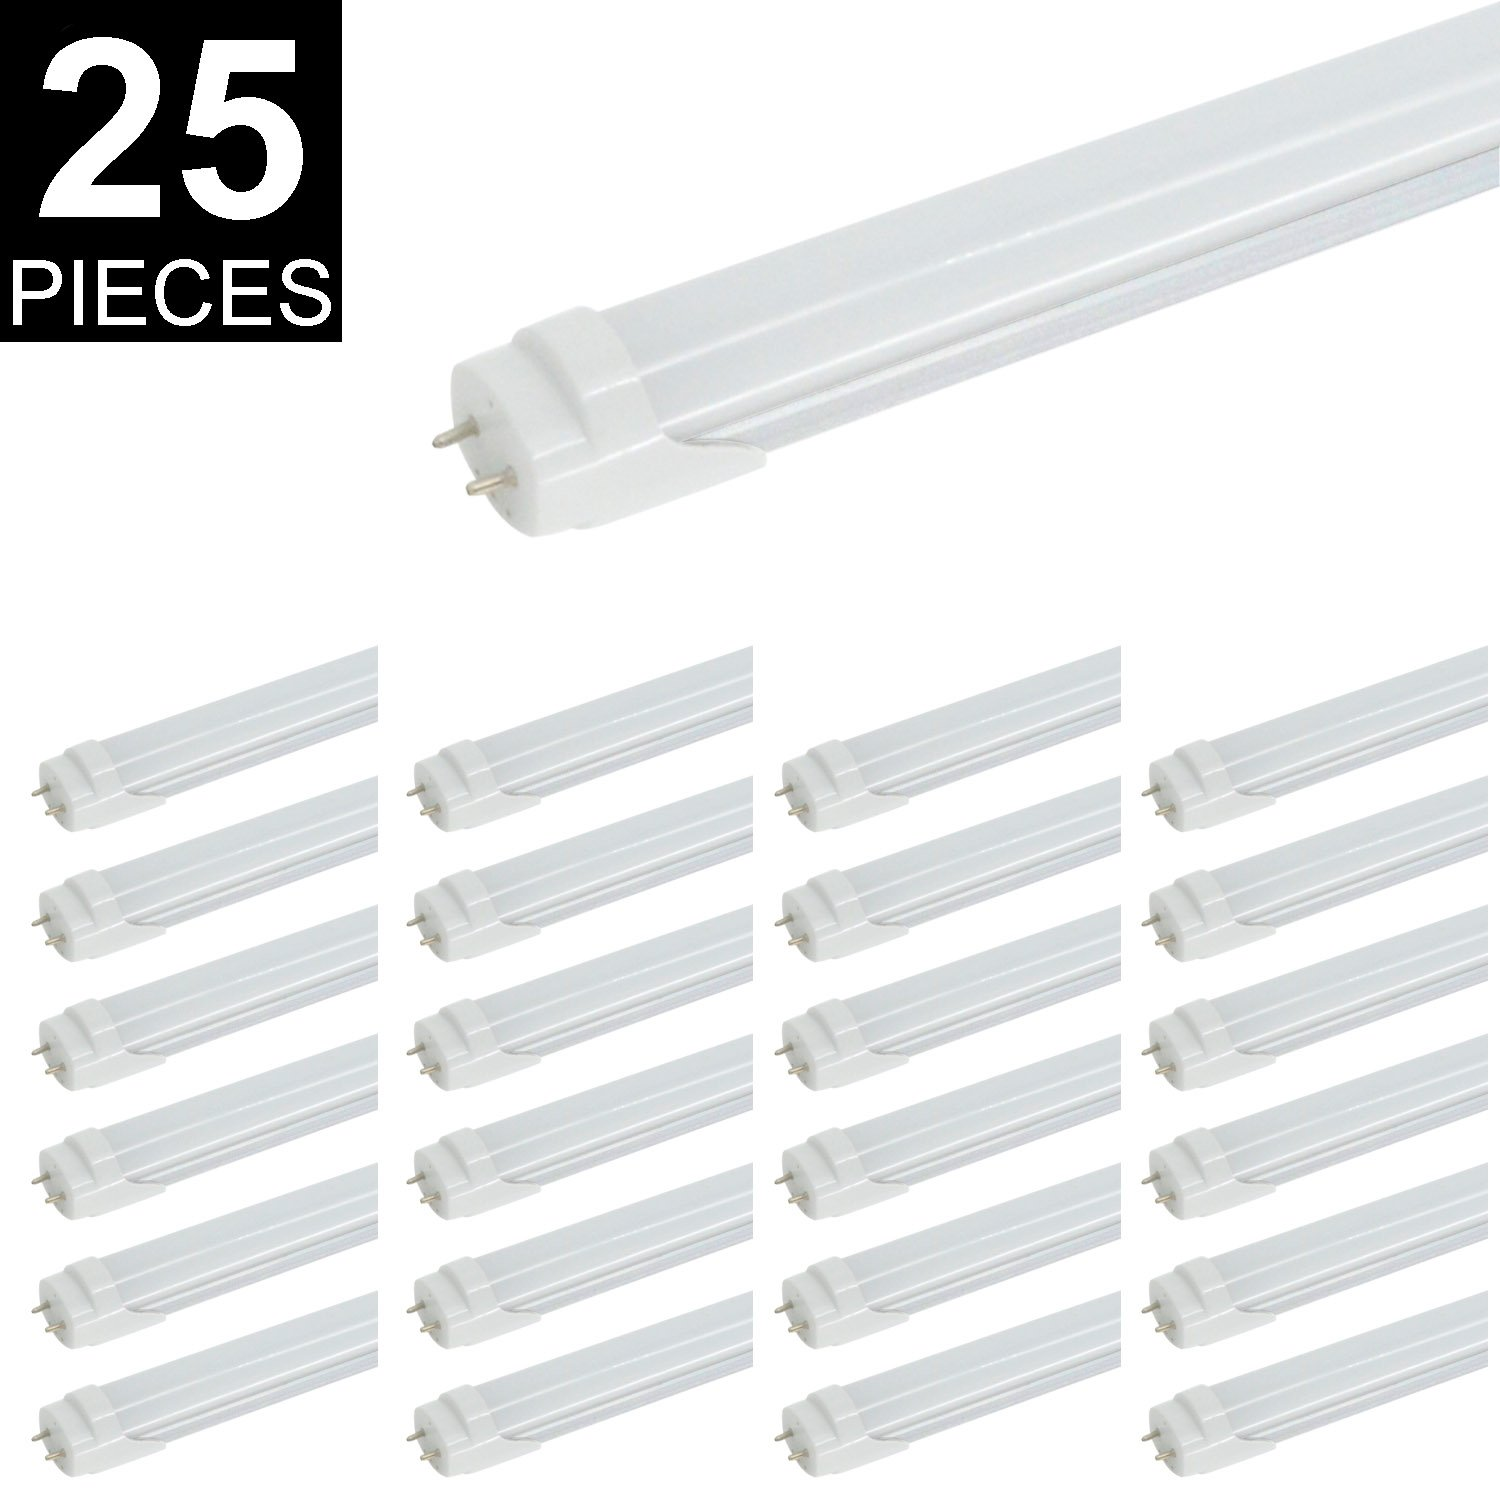 CNSUNWAY T8 LED Light Tube, 4FT, 22W (45W Fluorescent Replacement), 6000K (Cool White), 2310LM, Frosted Cover, Dual-End Powered, Two Pin G13 Bulbs, Works Without Ballast(Frosted Cover, 25)